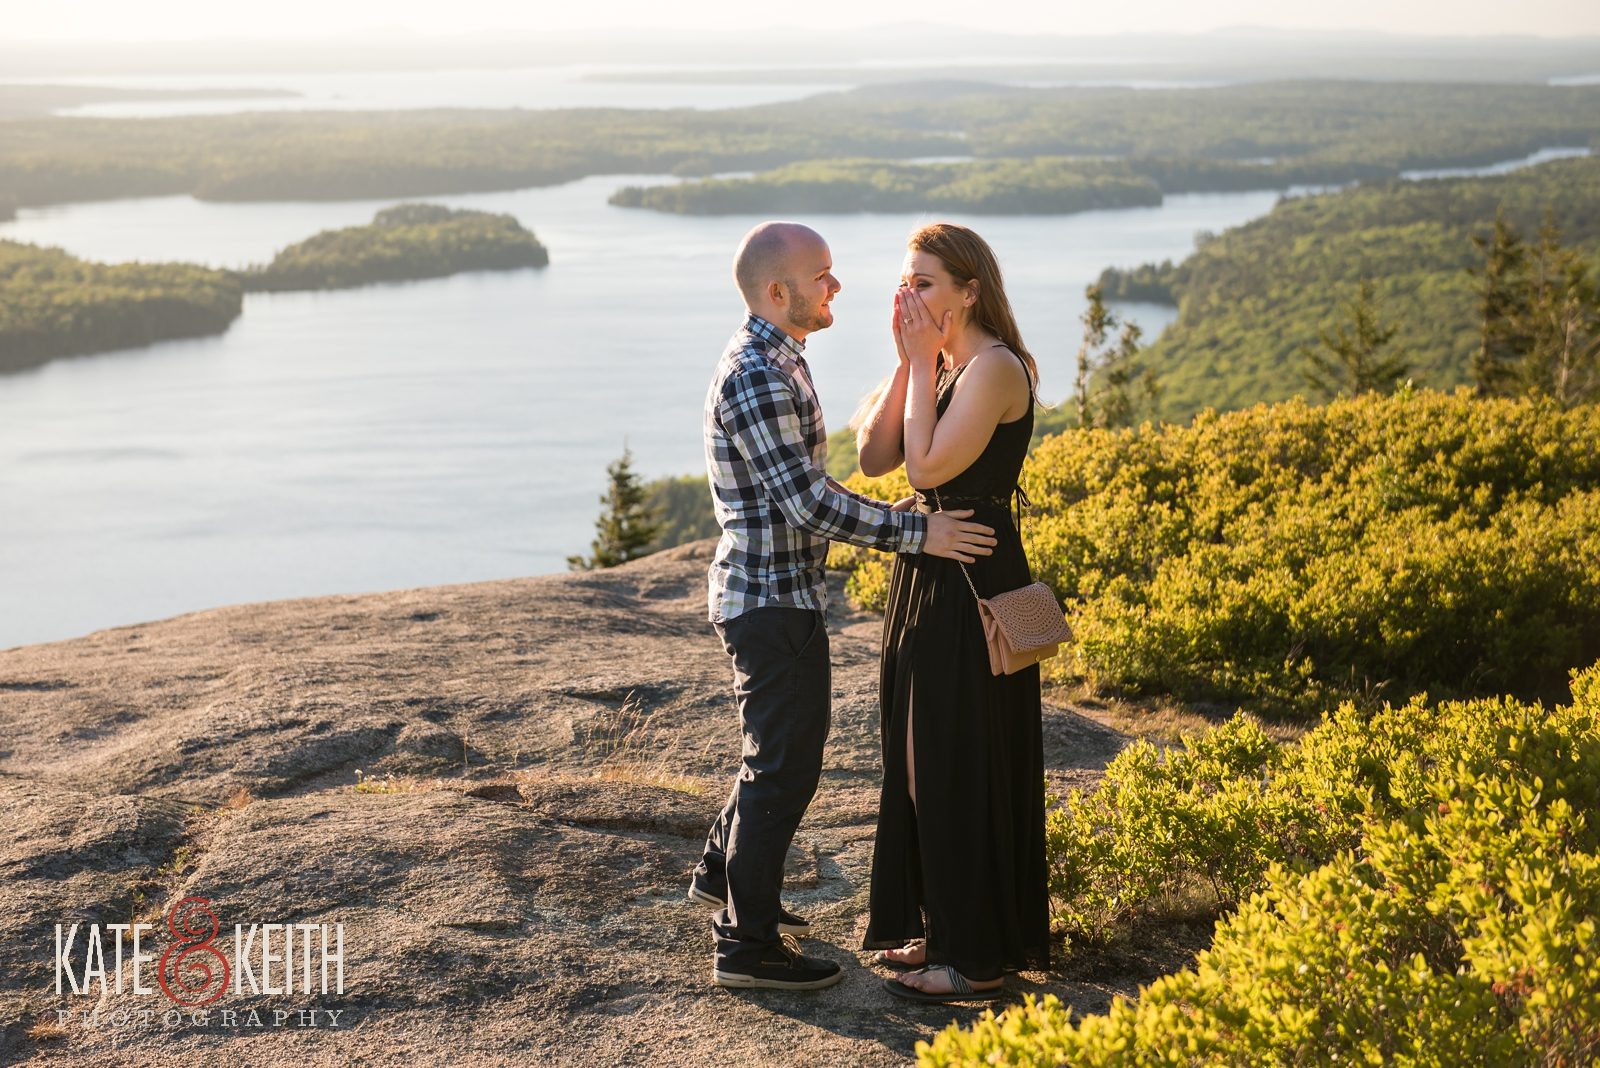 Acadia National Park, marriage proposal, engagement, engaged, wedding proposal, sunset, summer, summertime, Mount Desert Island, MDI